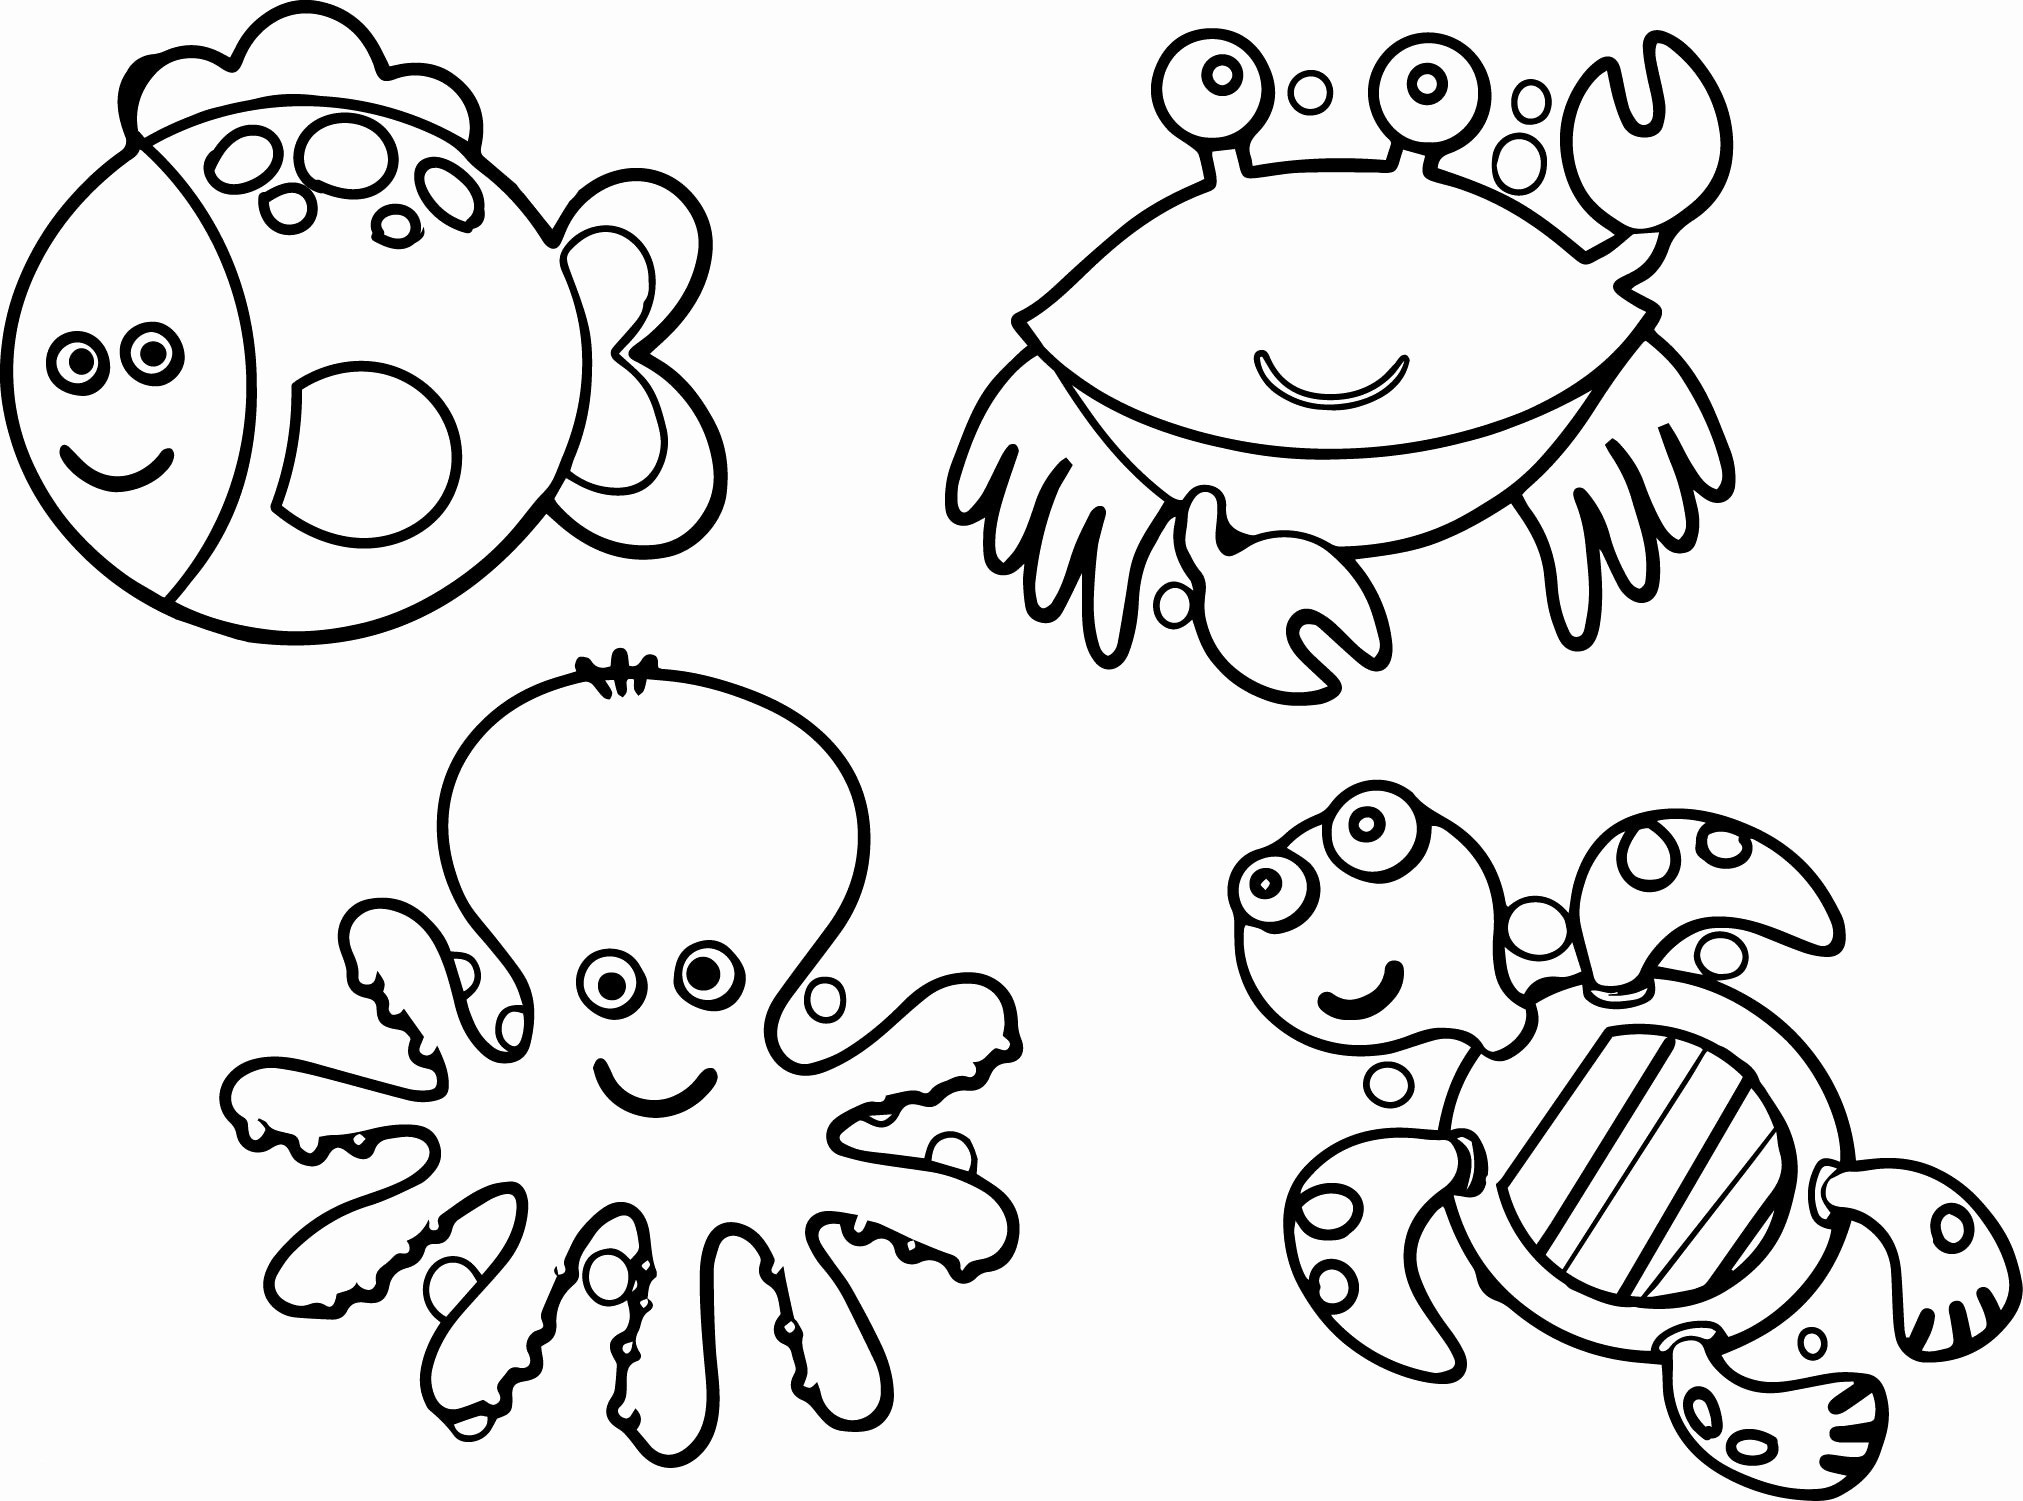 coloring images of animals animal coloring pages best coloring pages for kids animals of images coloring